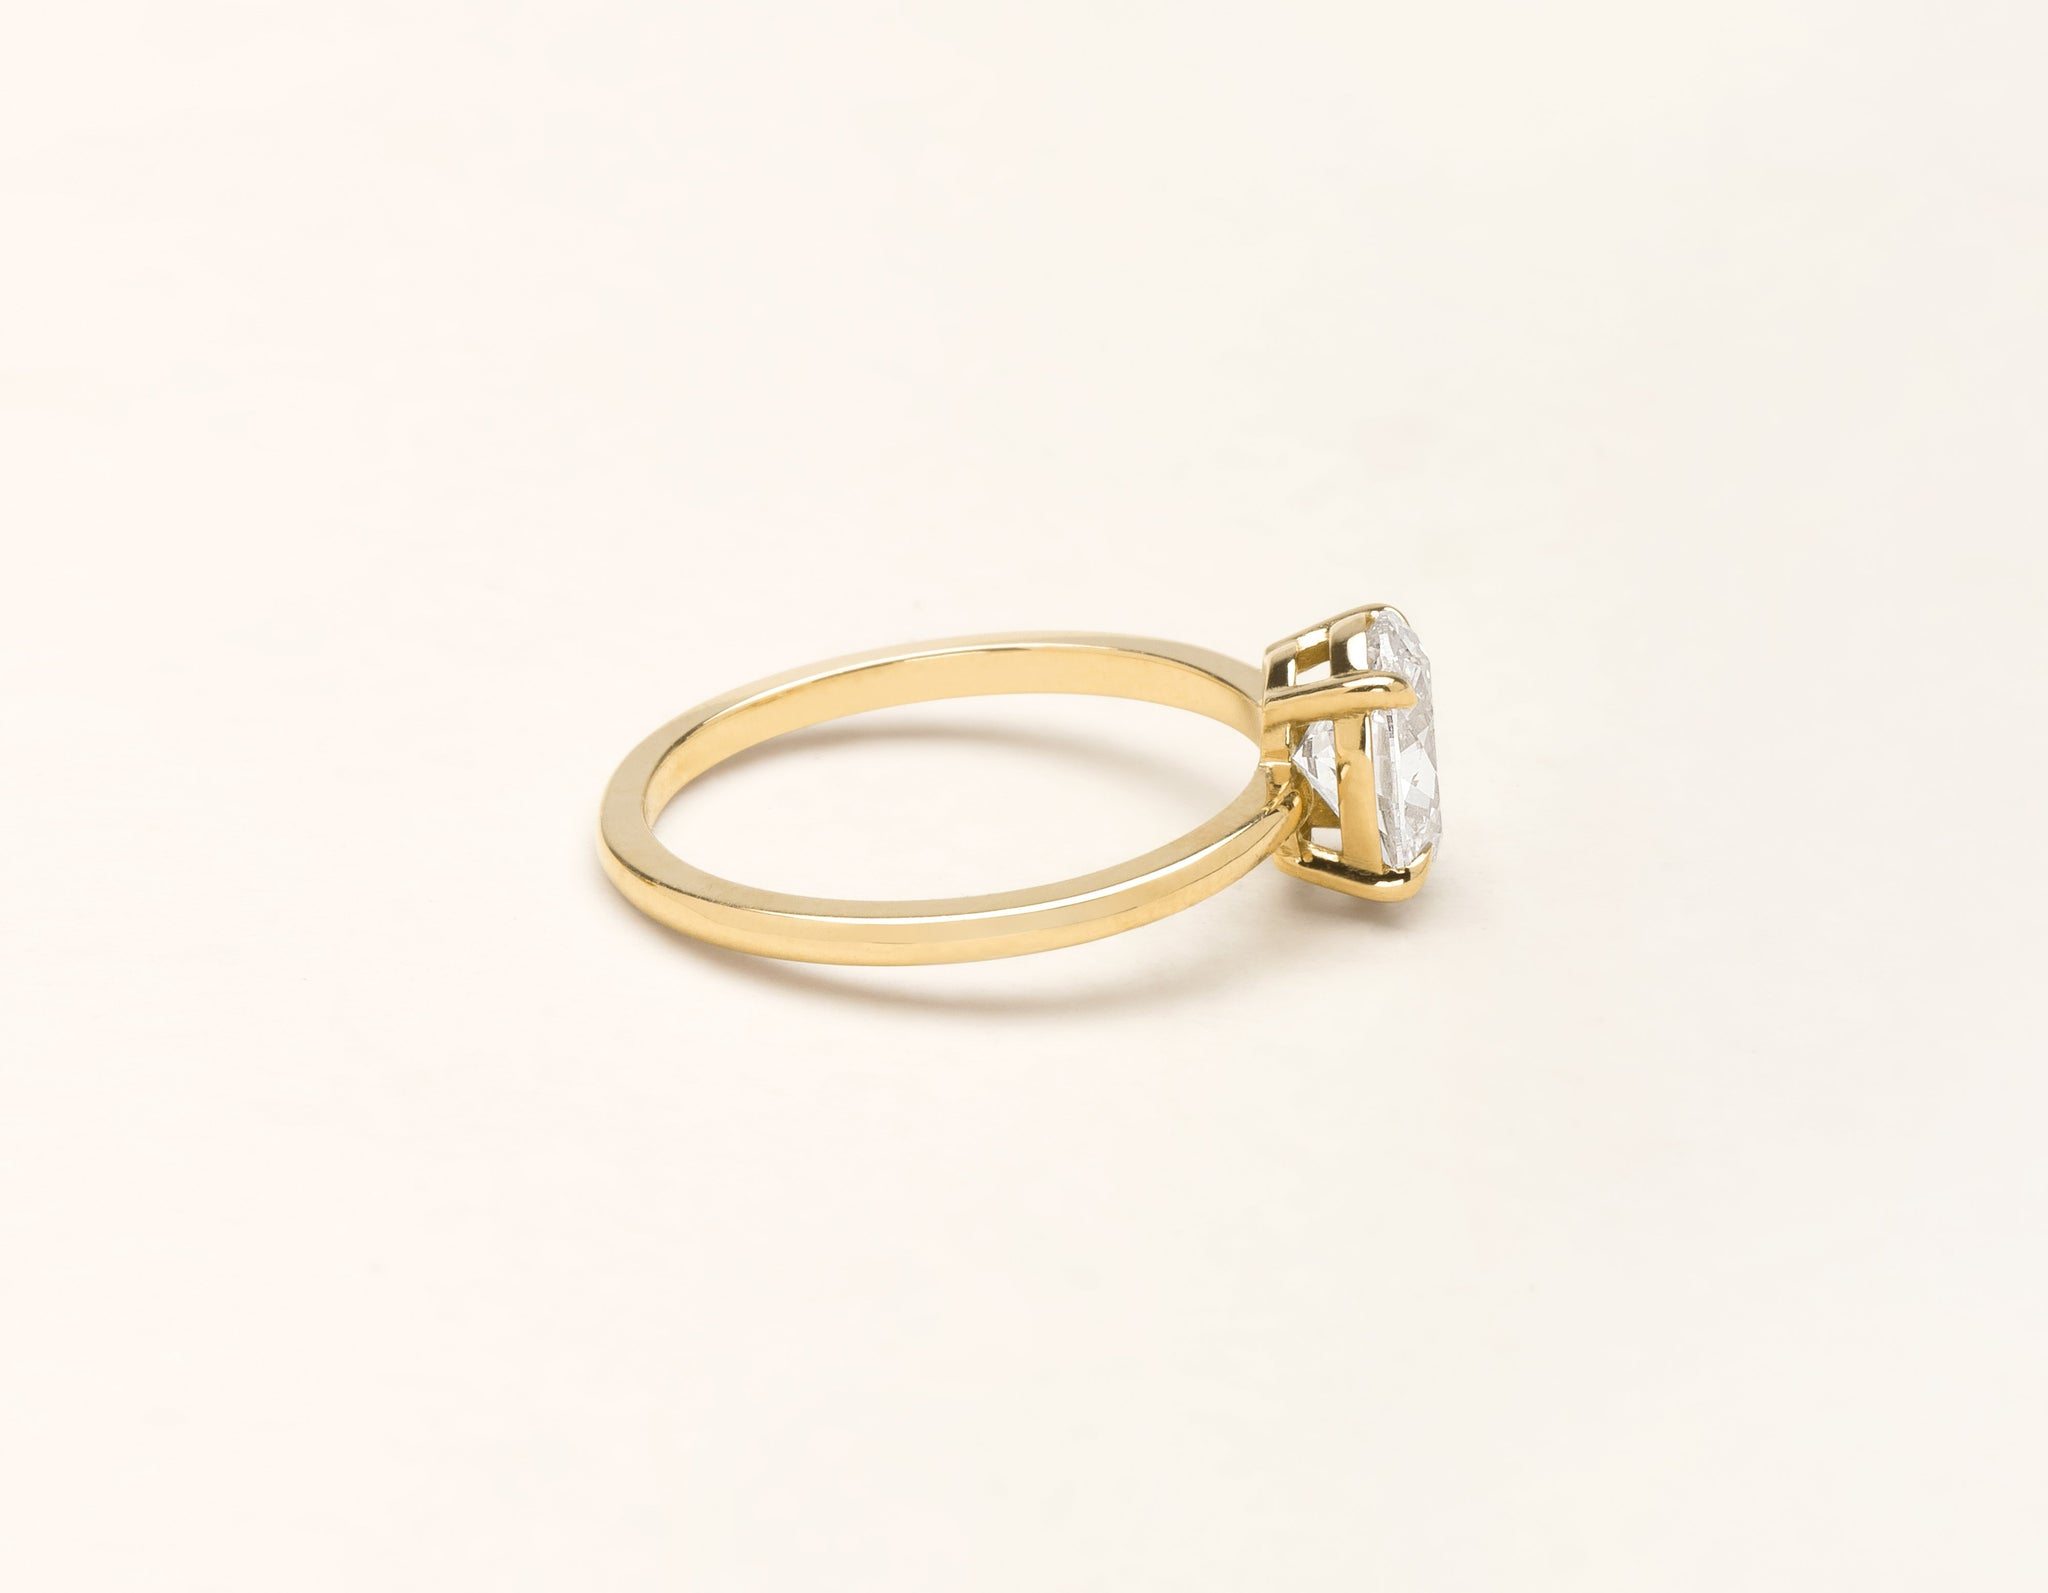 Simple modern 18k solid yellow gold 1 carat Oval diamond engagement ring Vrai & Oro